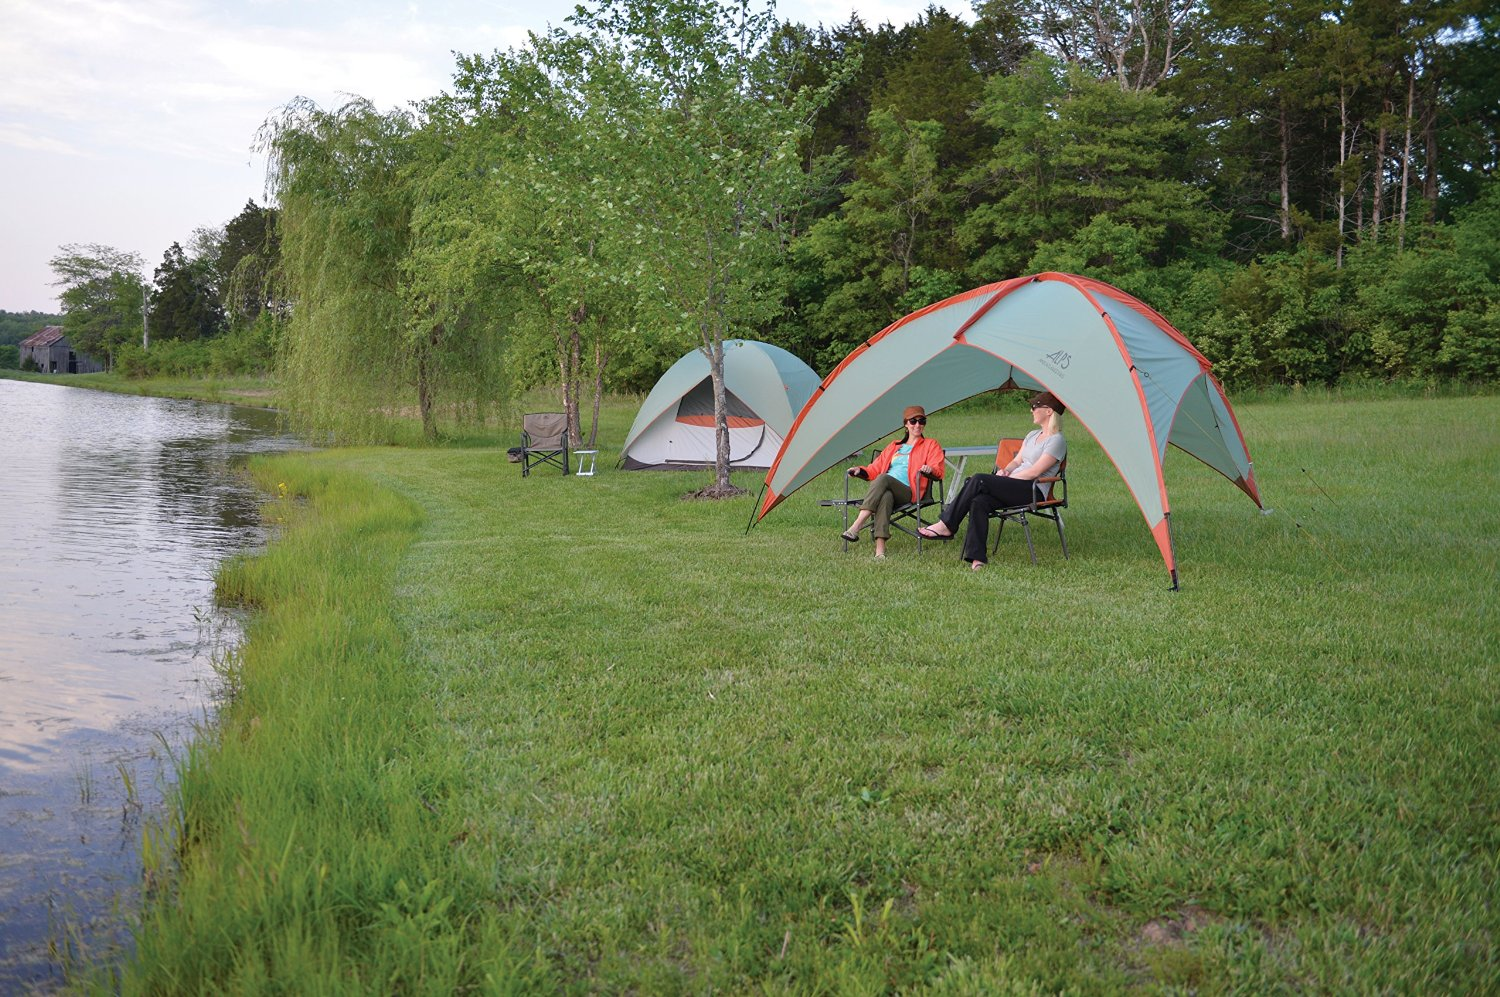 Find the Best 6 Person Tent & Find the Best 6 Person Tent - Outdoor Cafe Mag